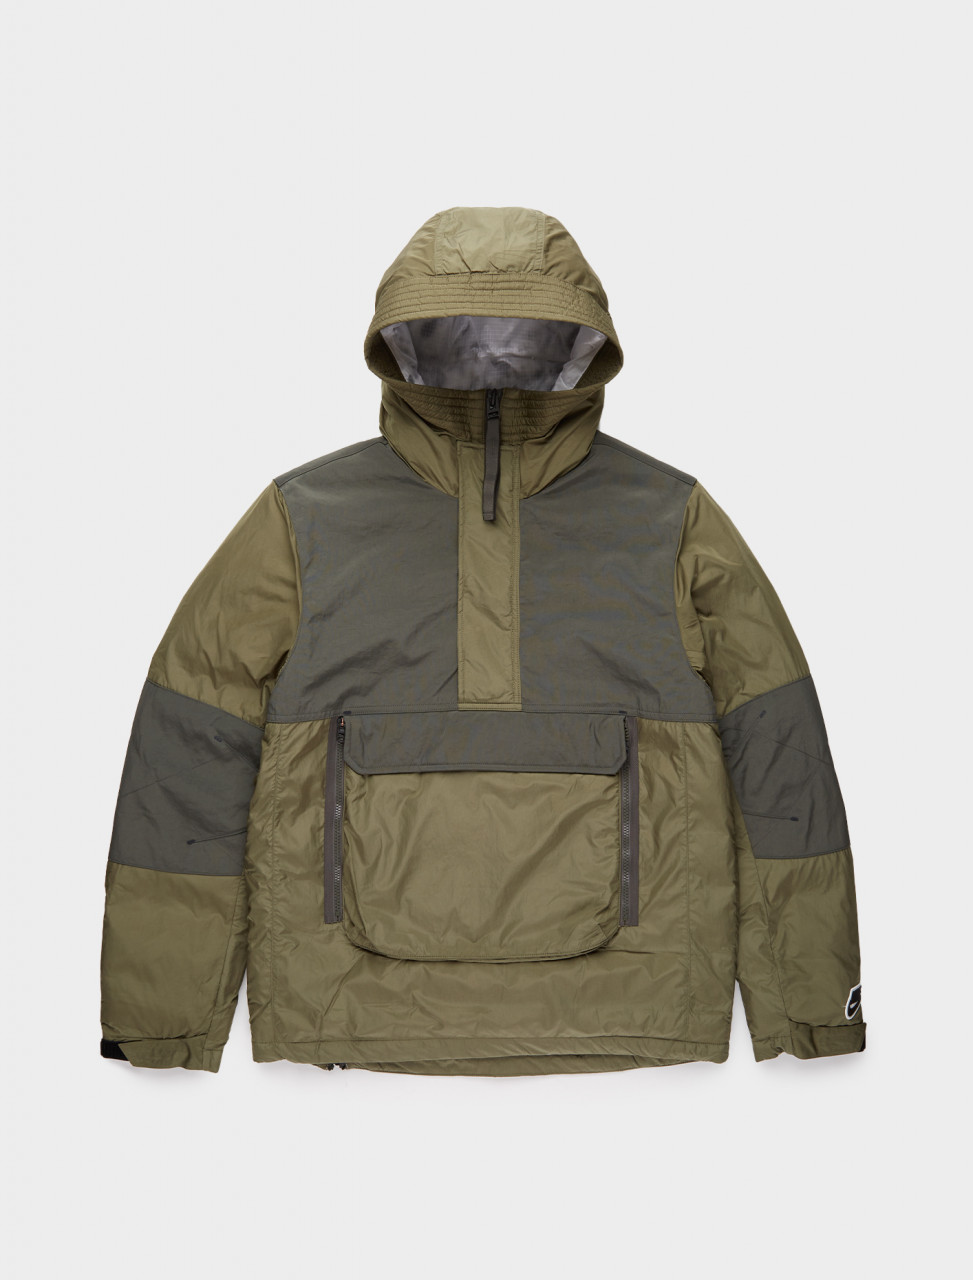 149-CU4420-222 NIKE SYNTHETIC-FILL JACKET OLIVE